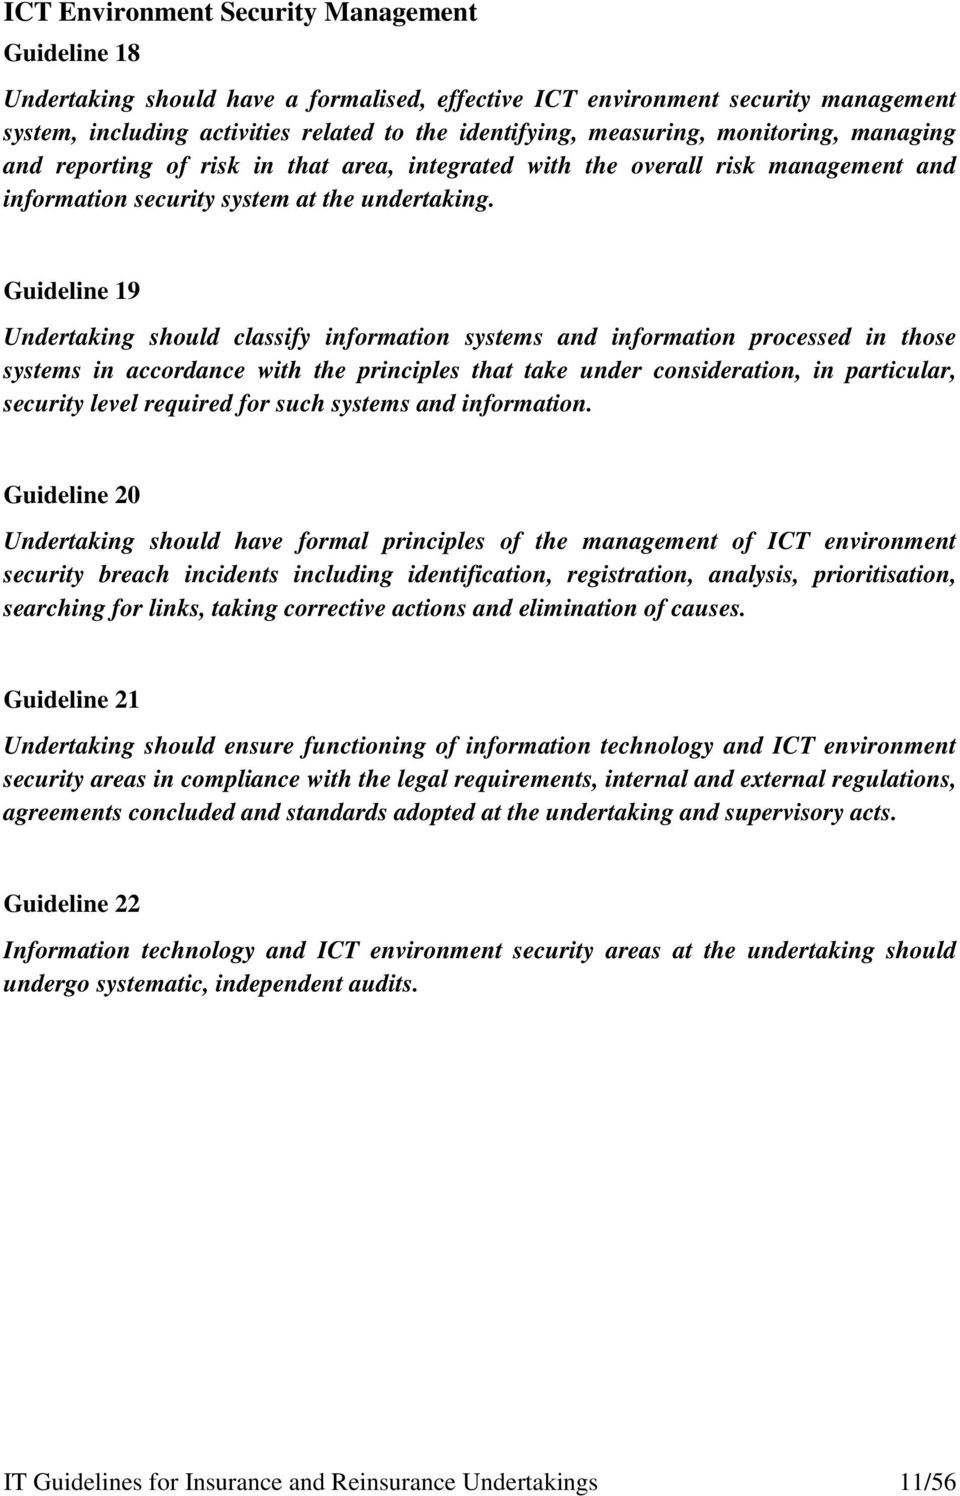 Guideline 19 Undertaking should classify information systems and information processed in those systems in accordance with the principles that take under consideration, in particular, security level